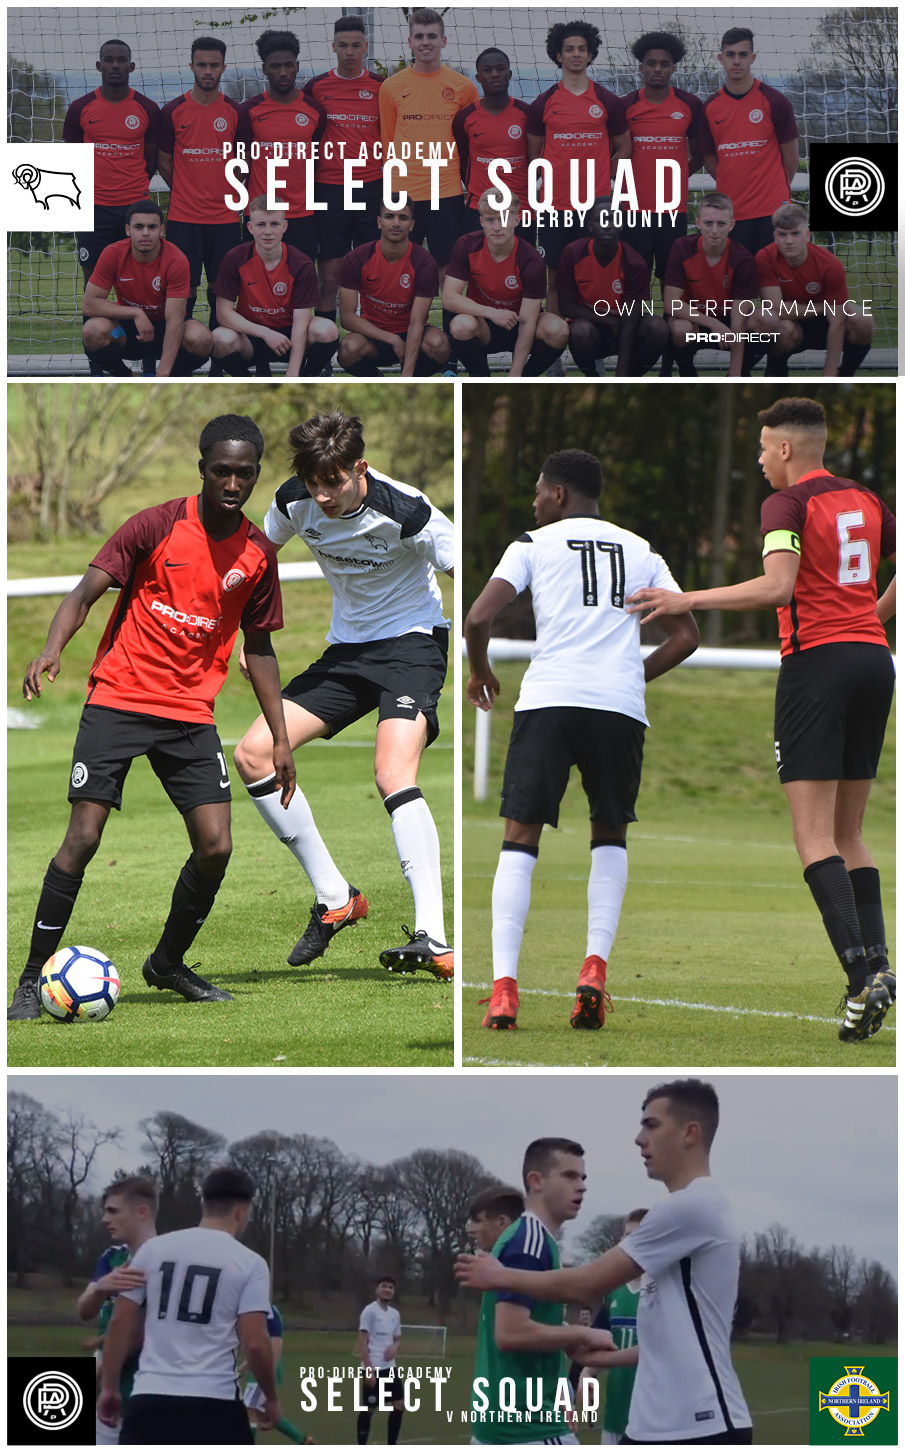 The Pro:Direct Academy Select Squad in action versus Derby County Academy and Northern Ireland U19s.